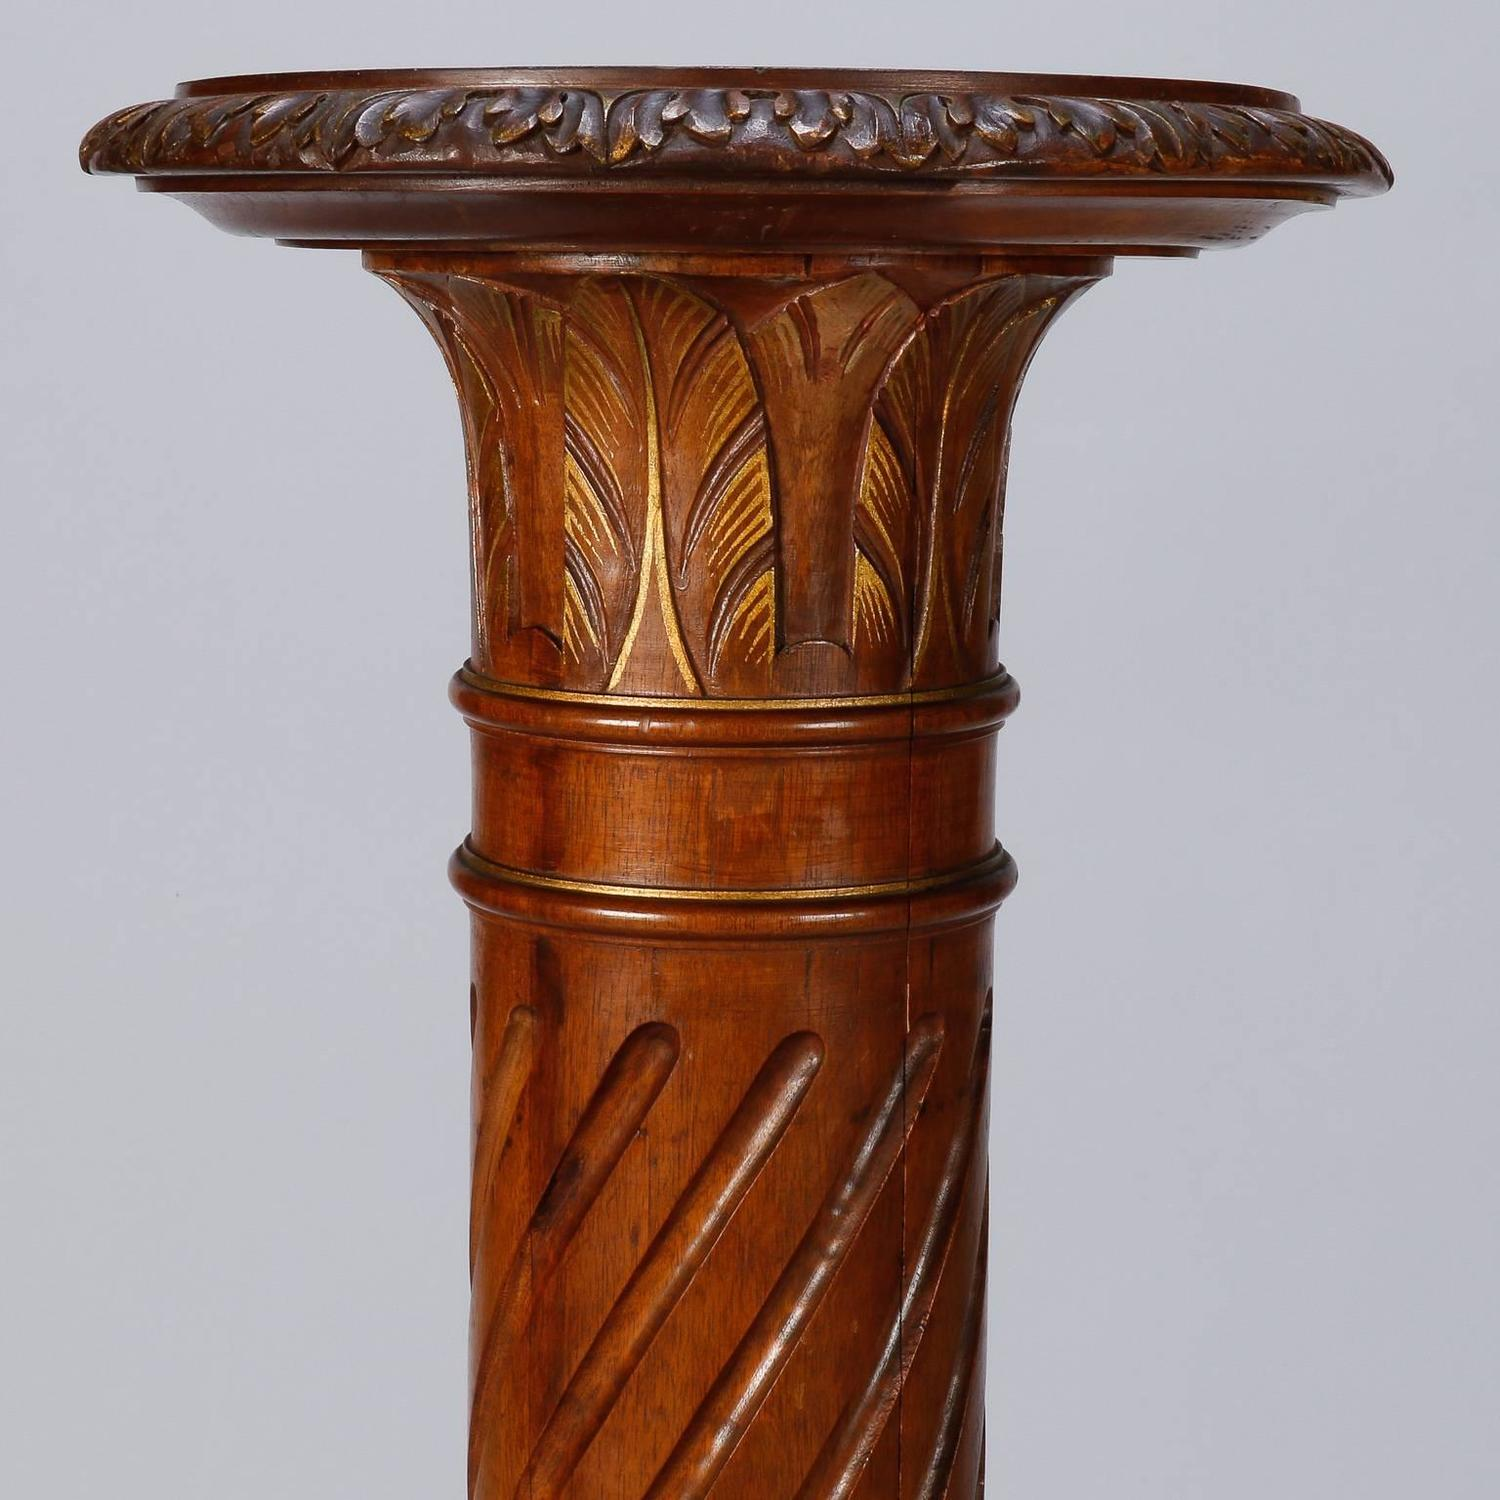 Tall Carved Wood Pedestal Plant Or Statue Stand For Sale